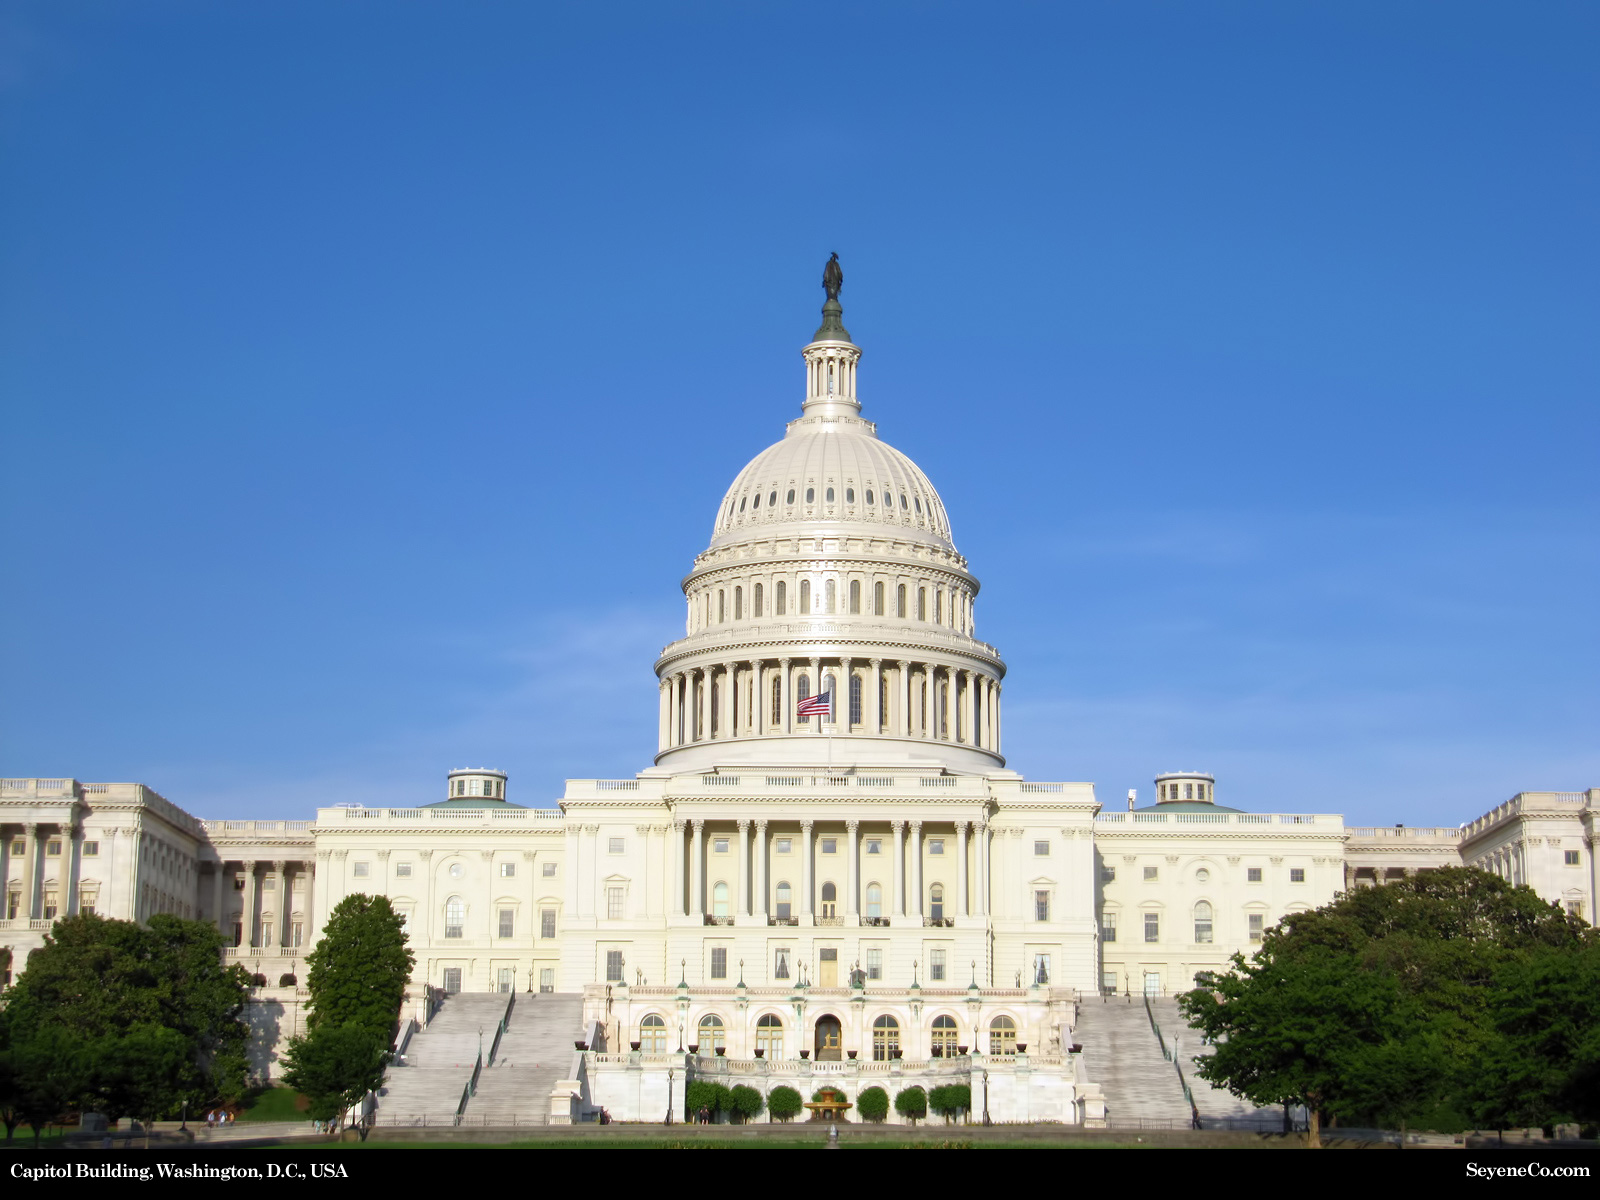 name white house wallpapers total images 15 resolution n a genre world 1234